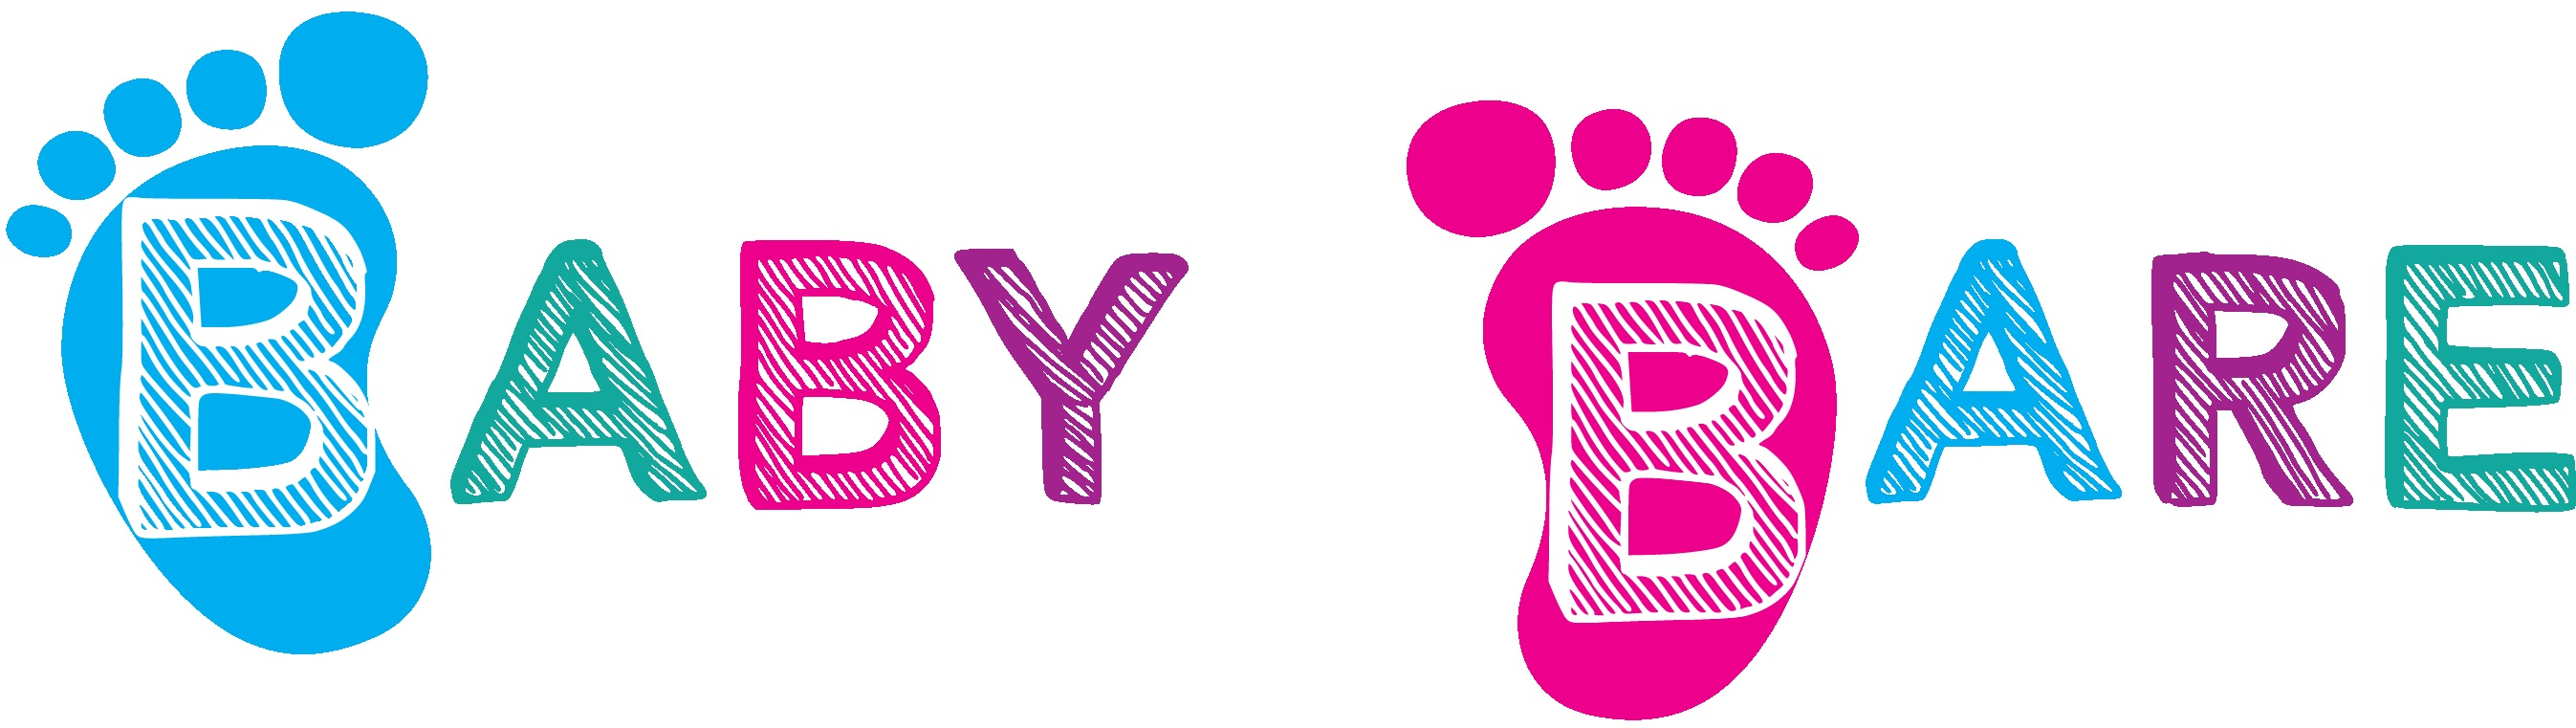 babybareshoes logo